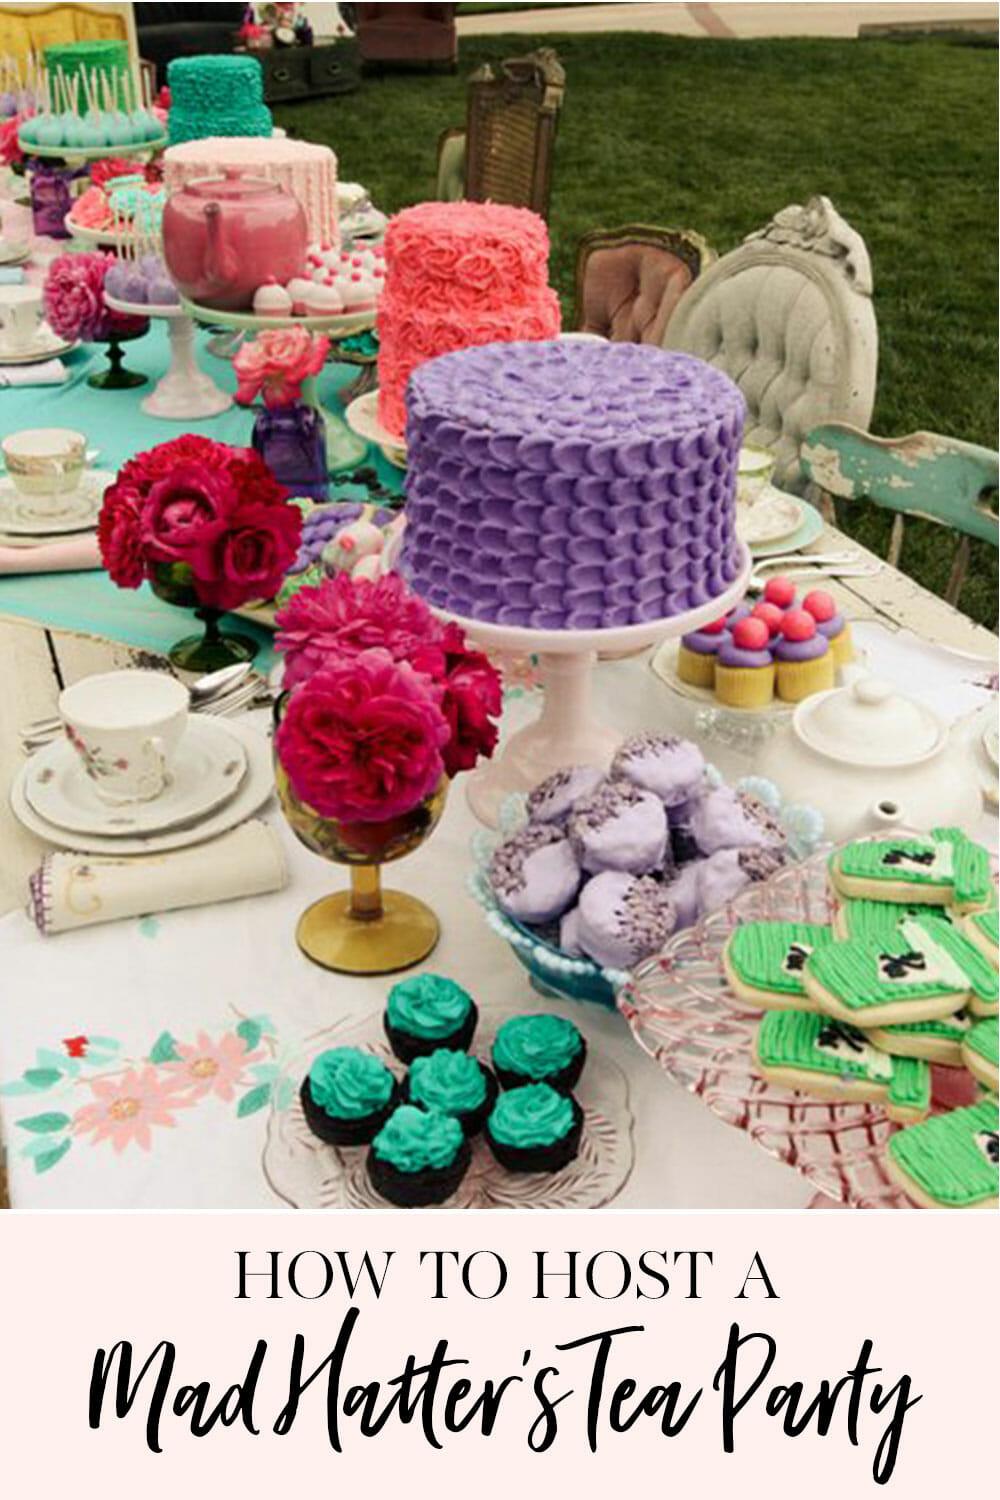 How To Host Mad Hatters Tea Party